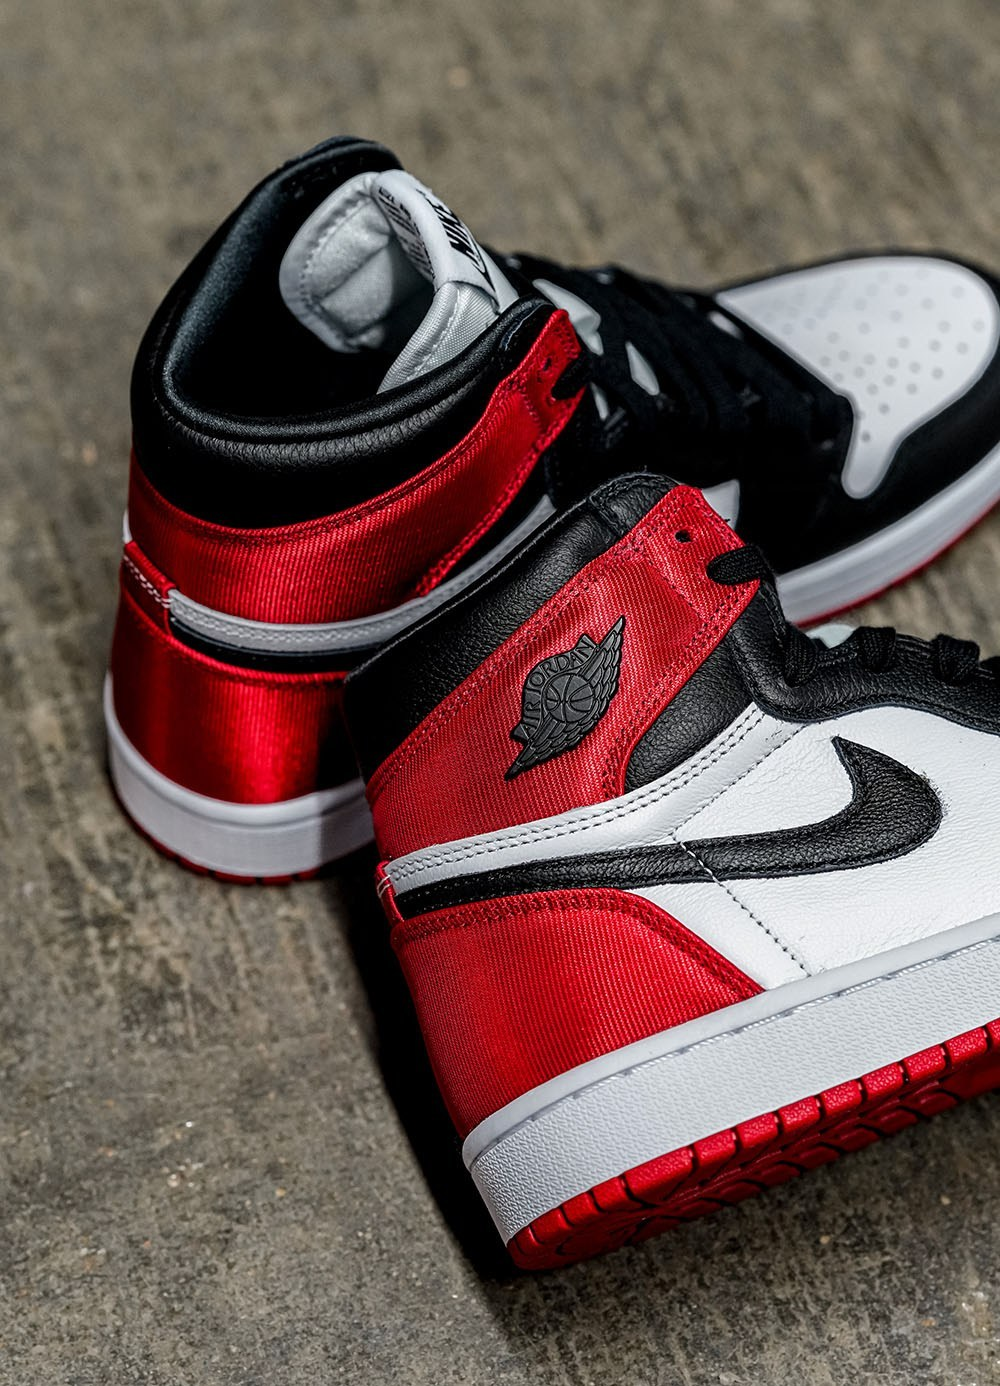 First Look at the Air Jordan 1 Satin Black Toe